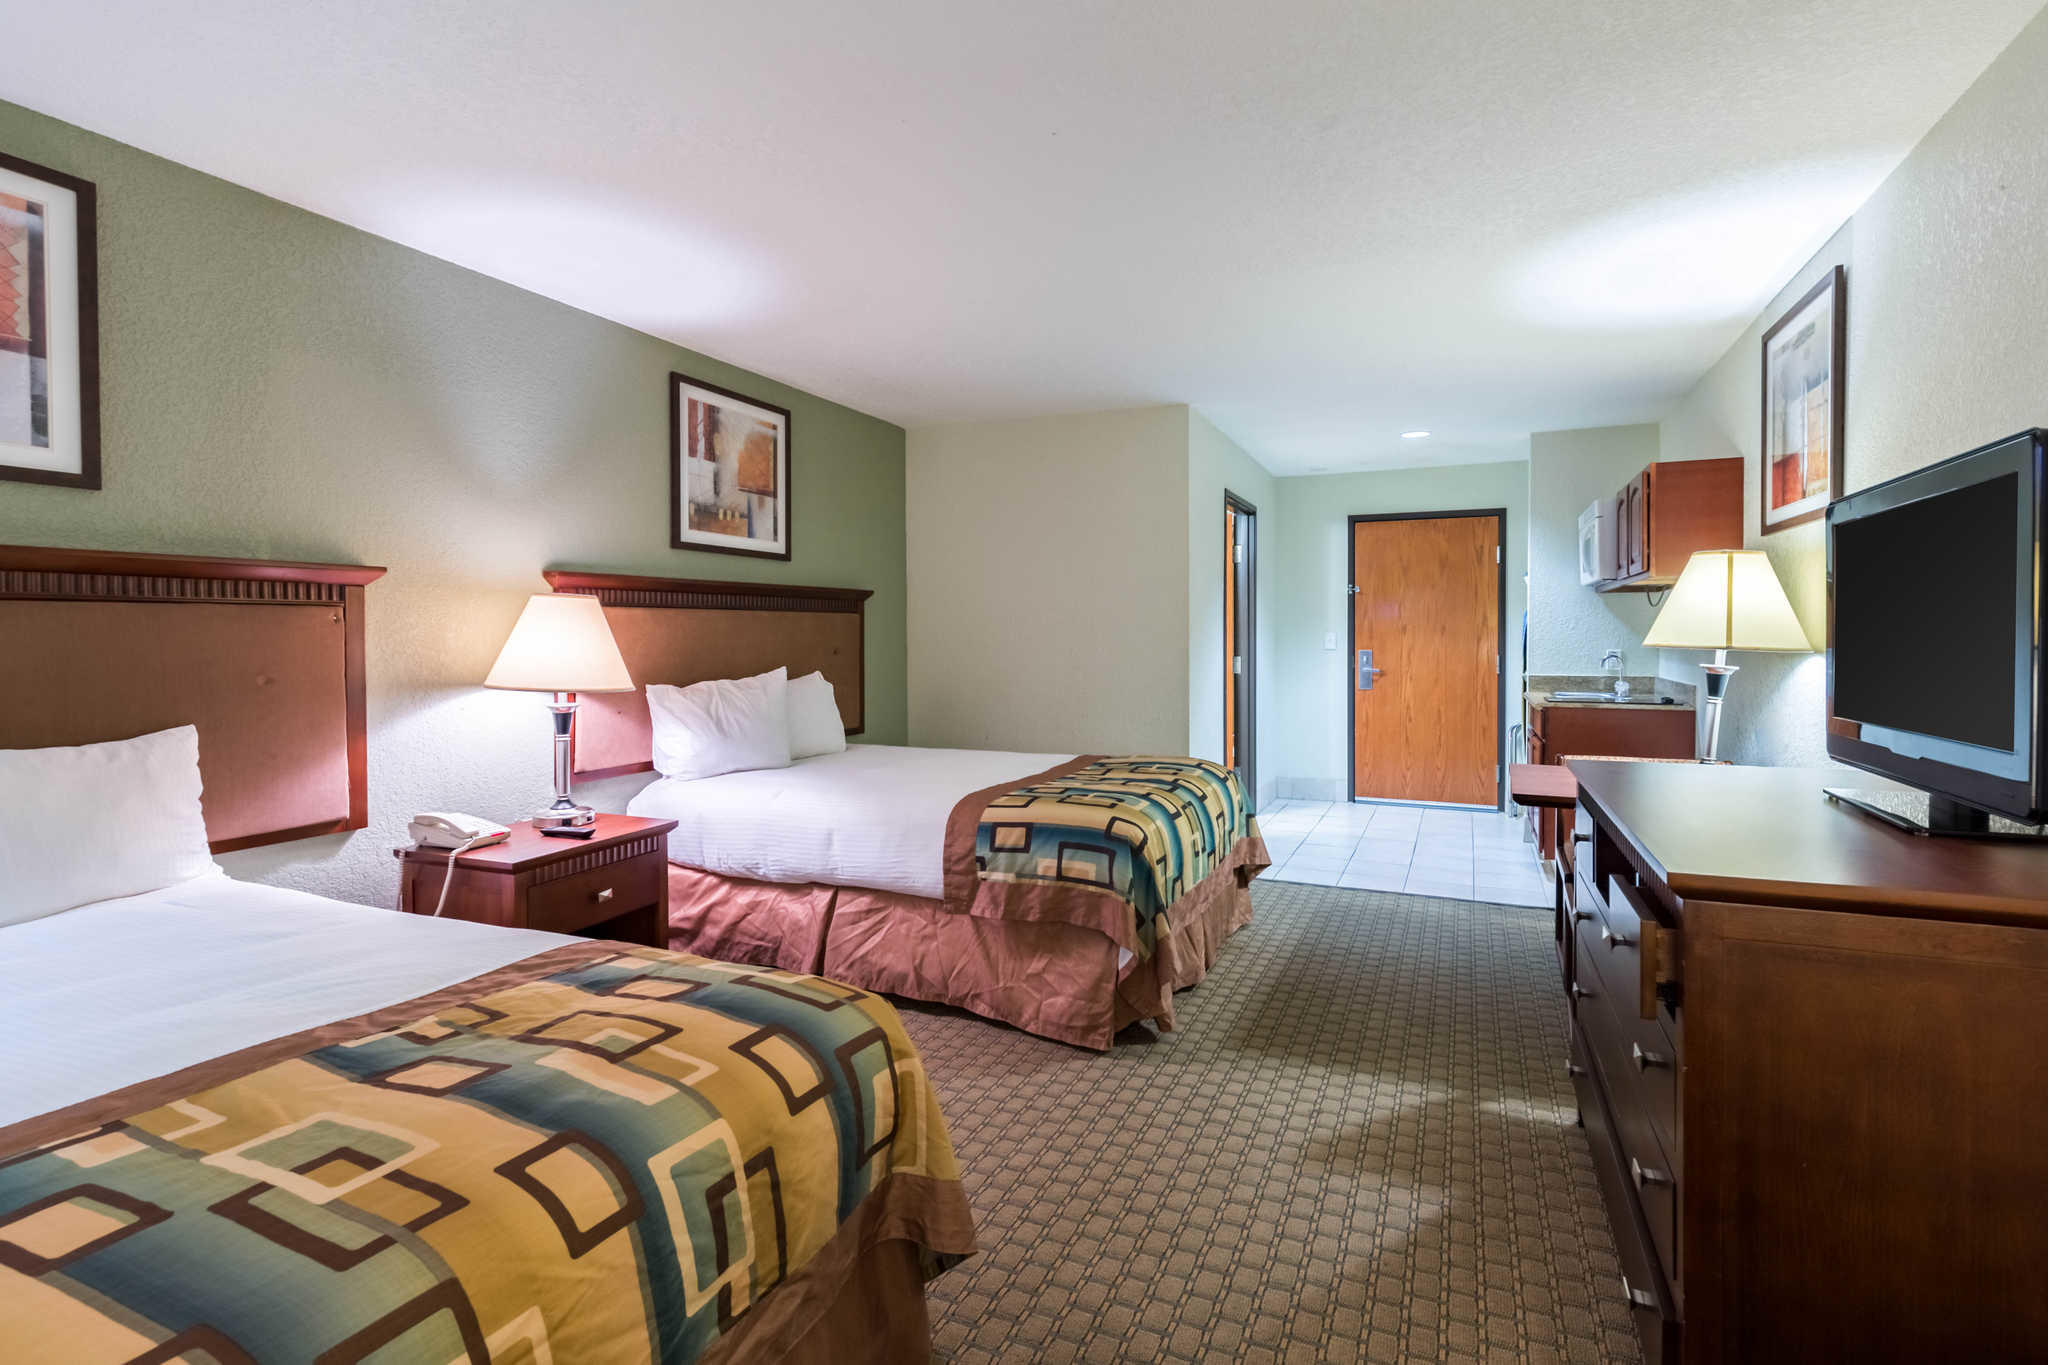 Extended Stay Hotels Near Beaumont Tx